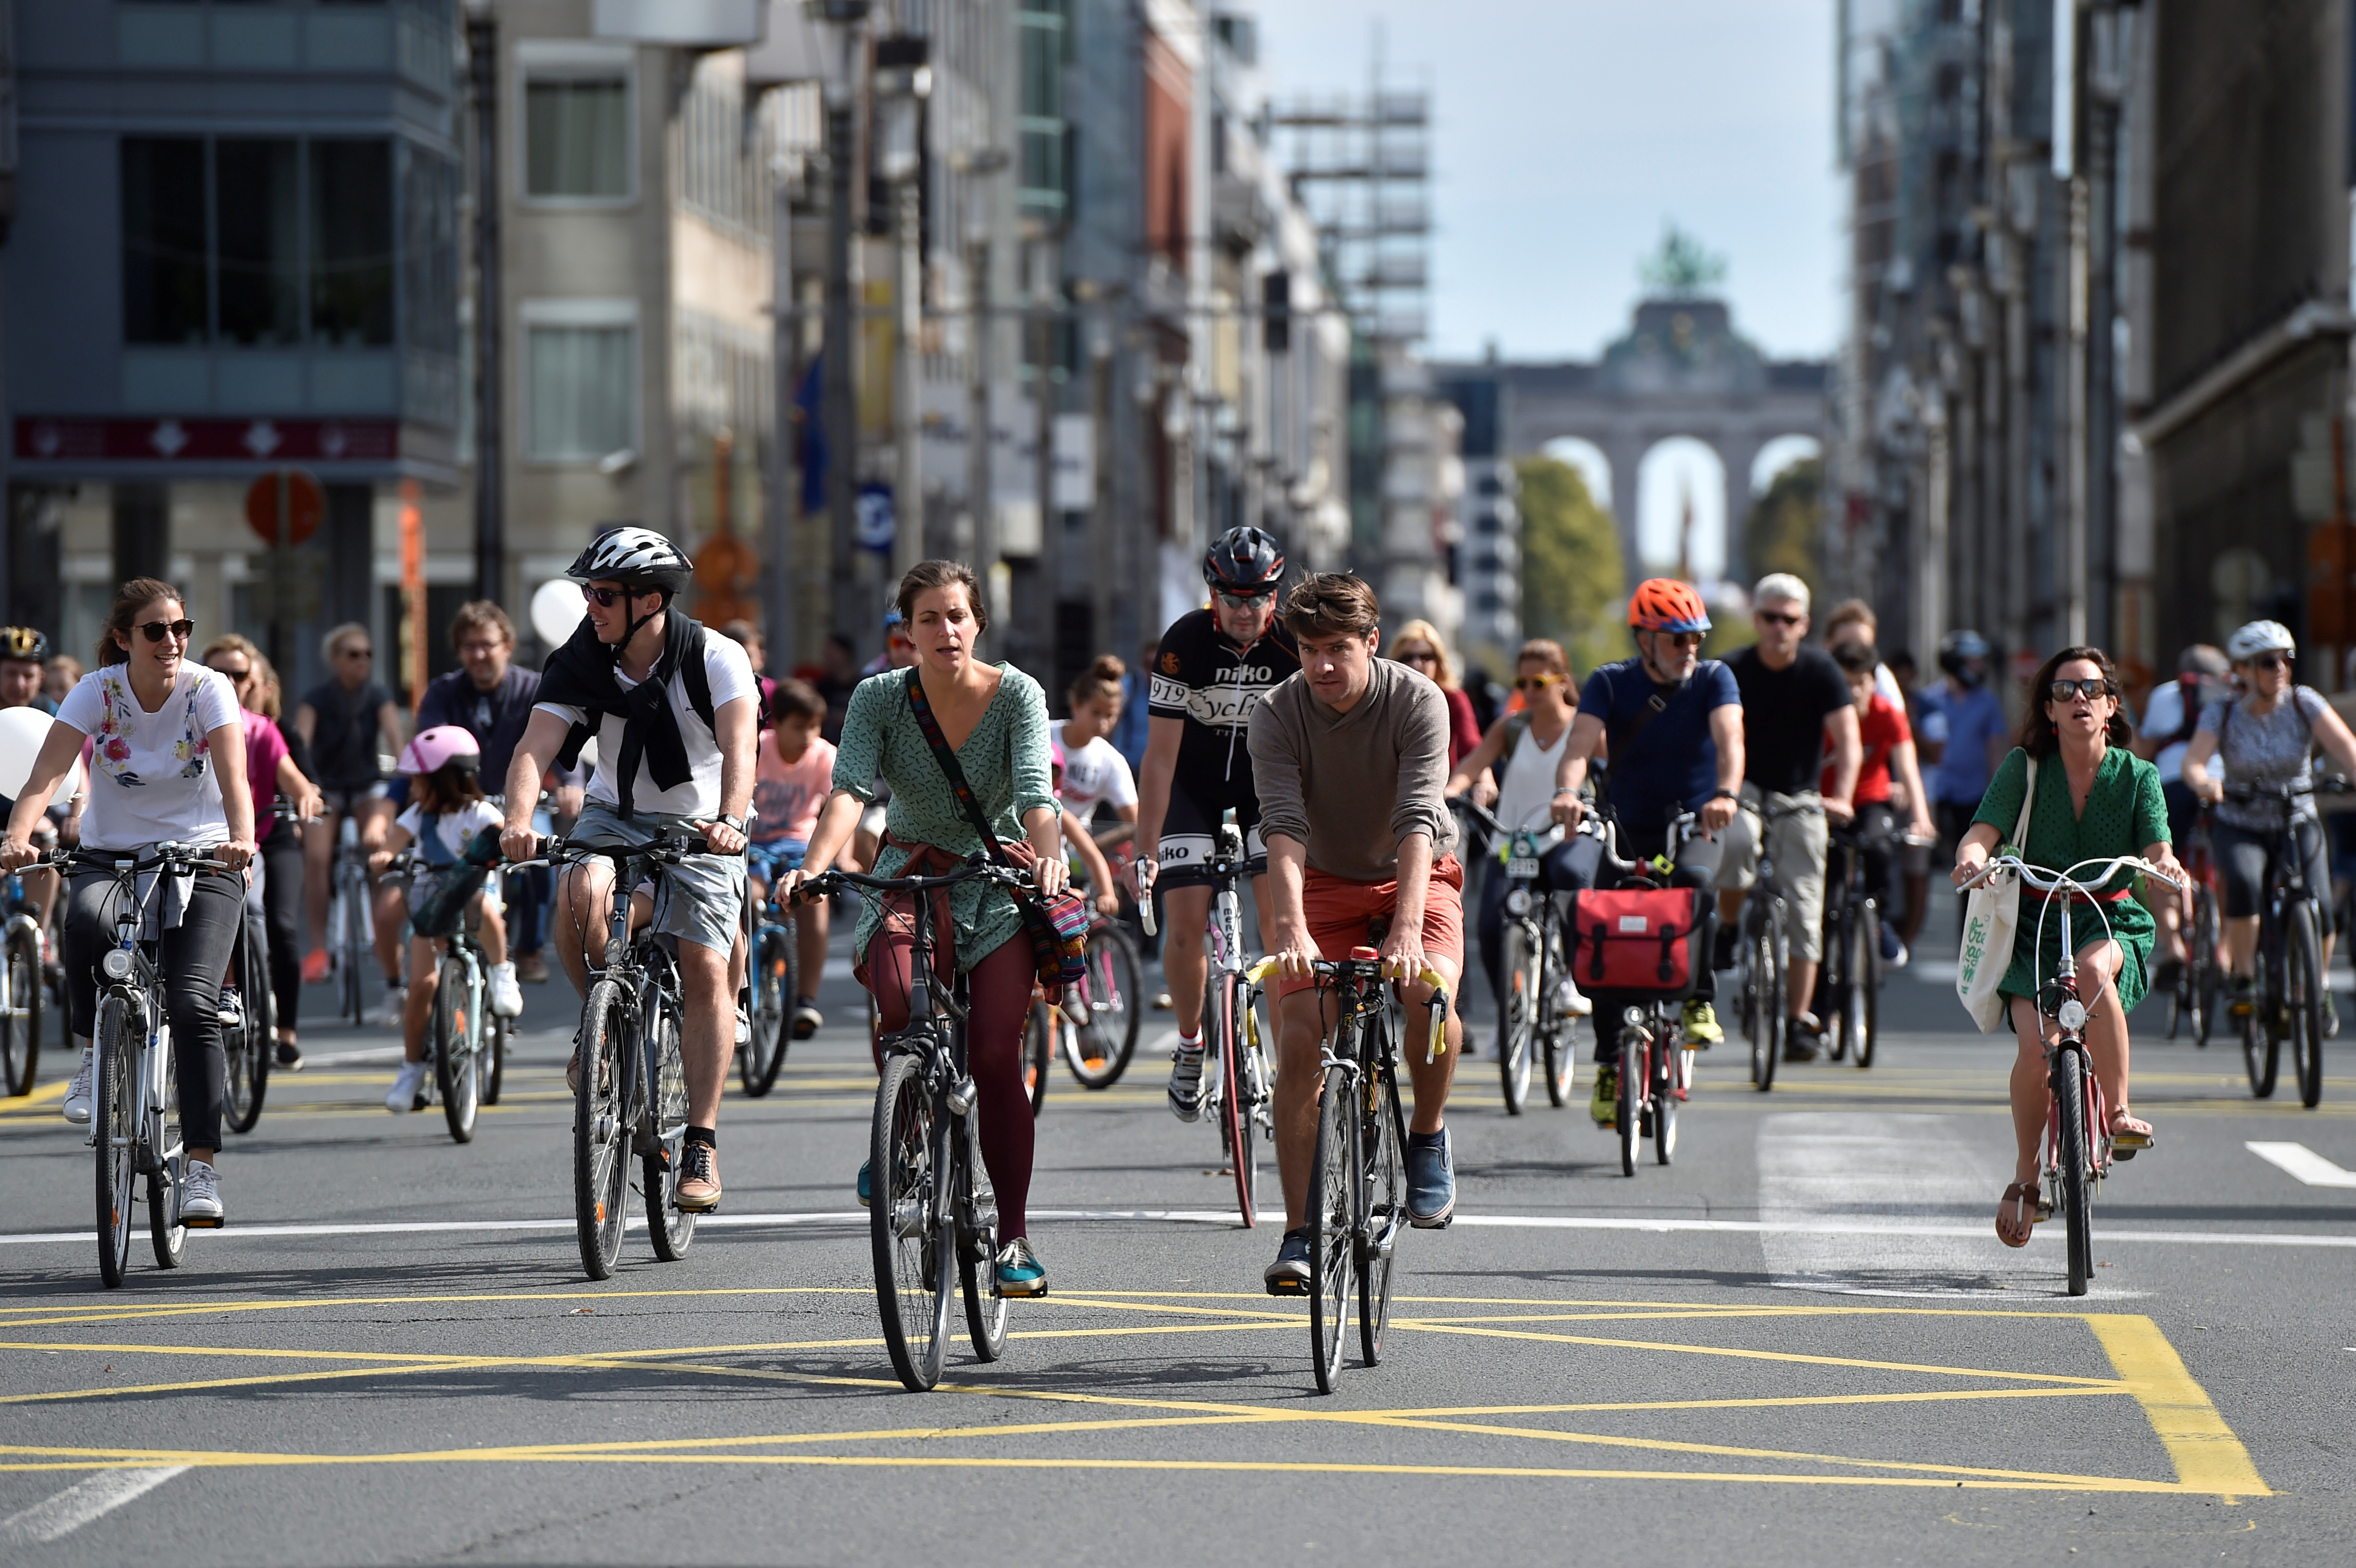 people using the streets on bicycles instead of cars